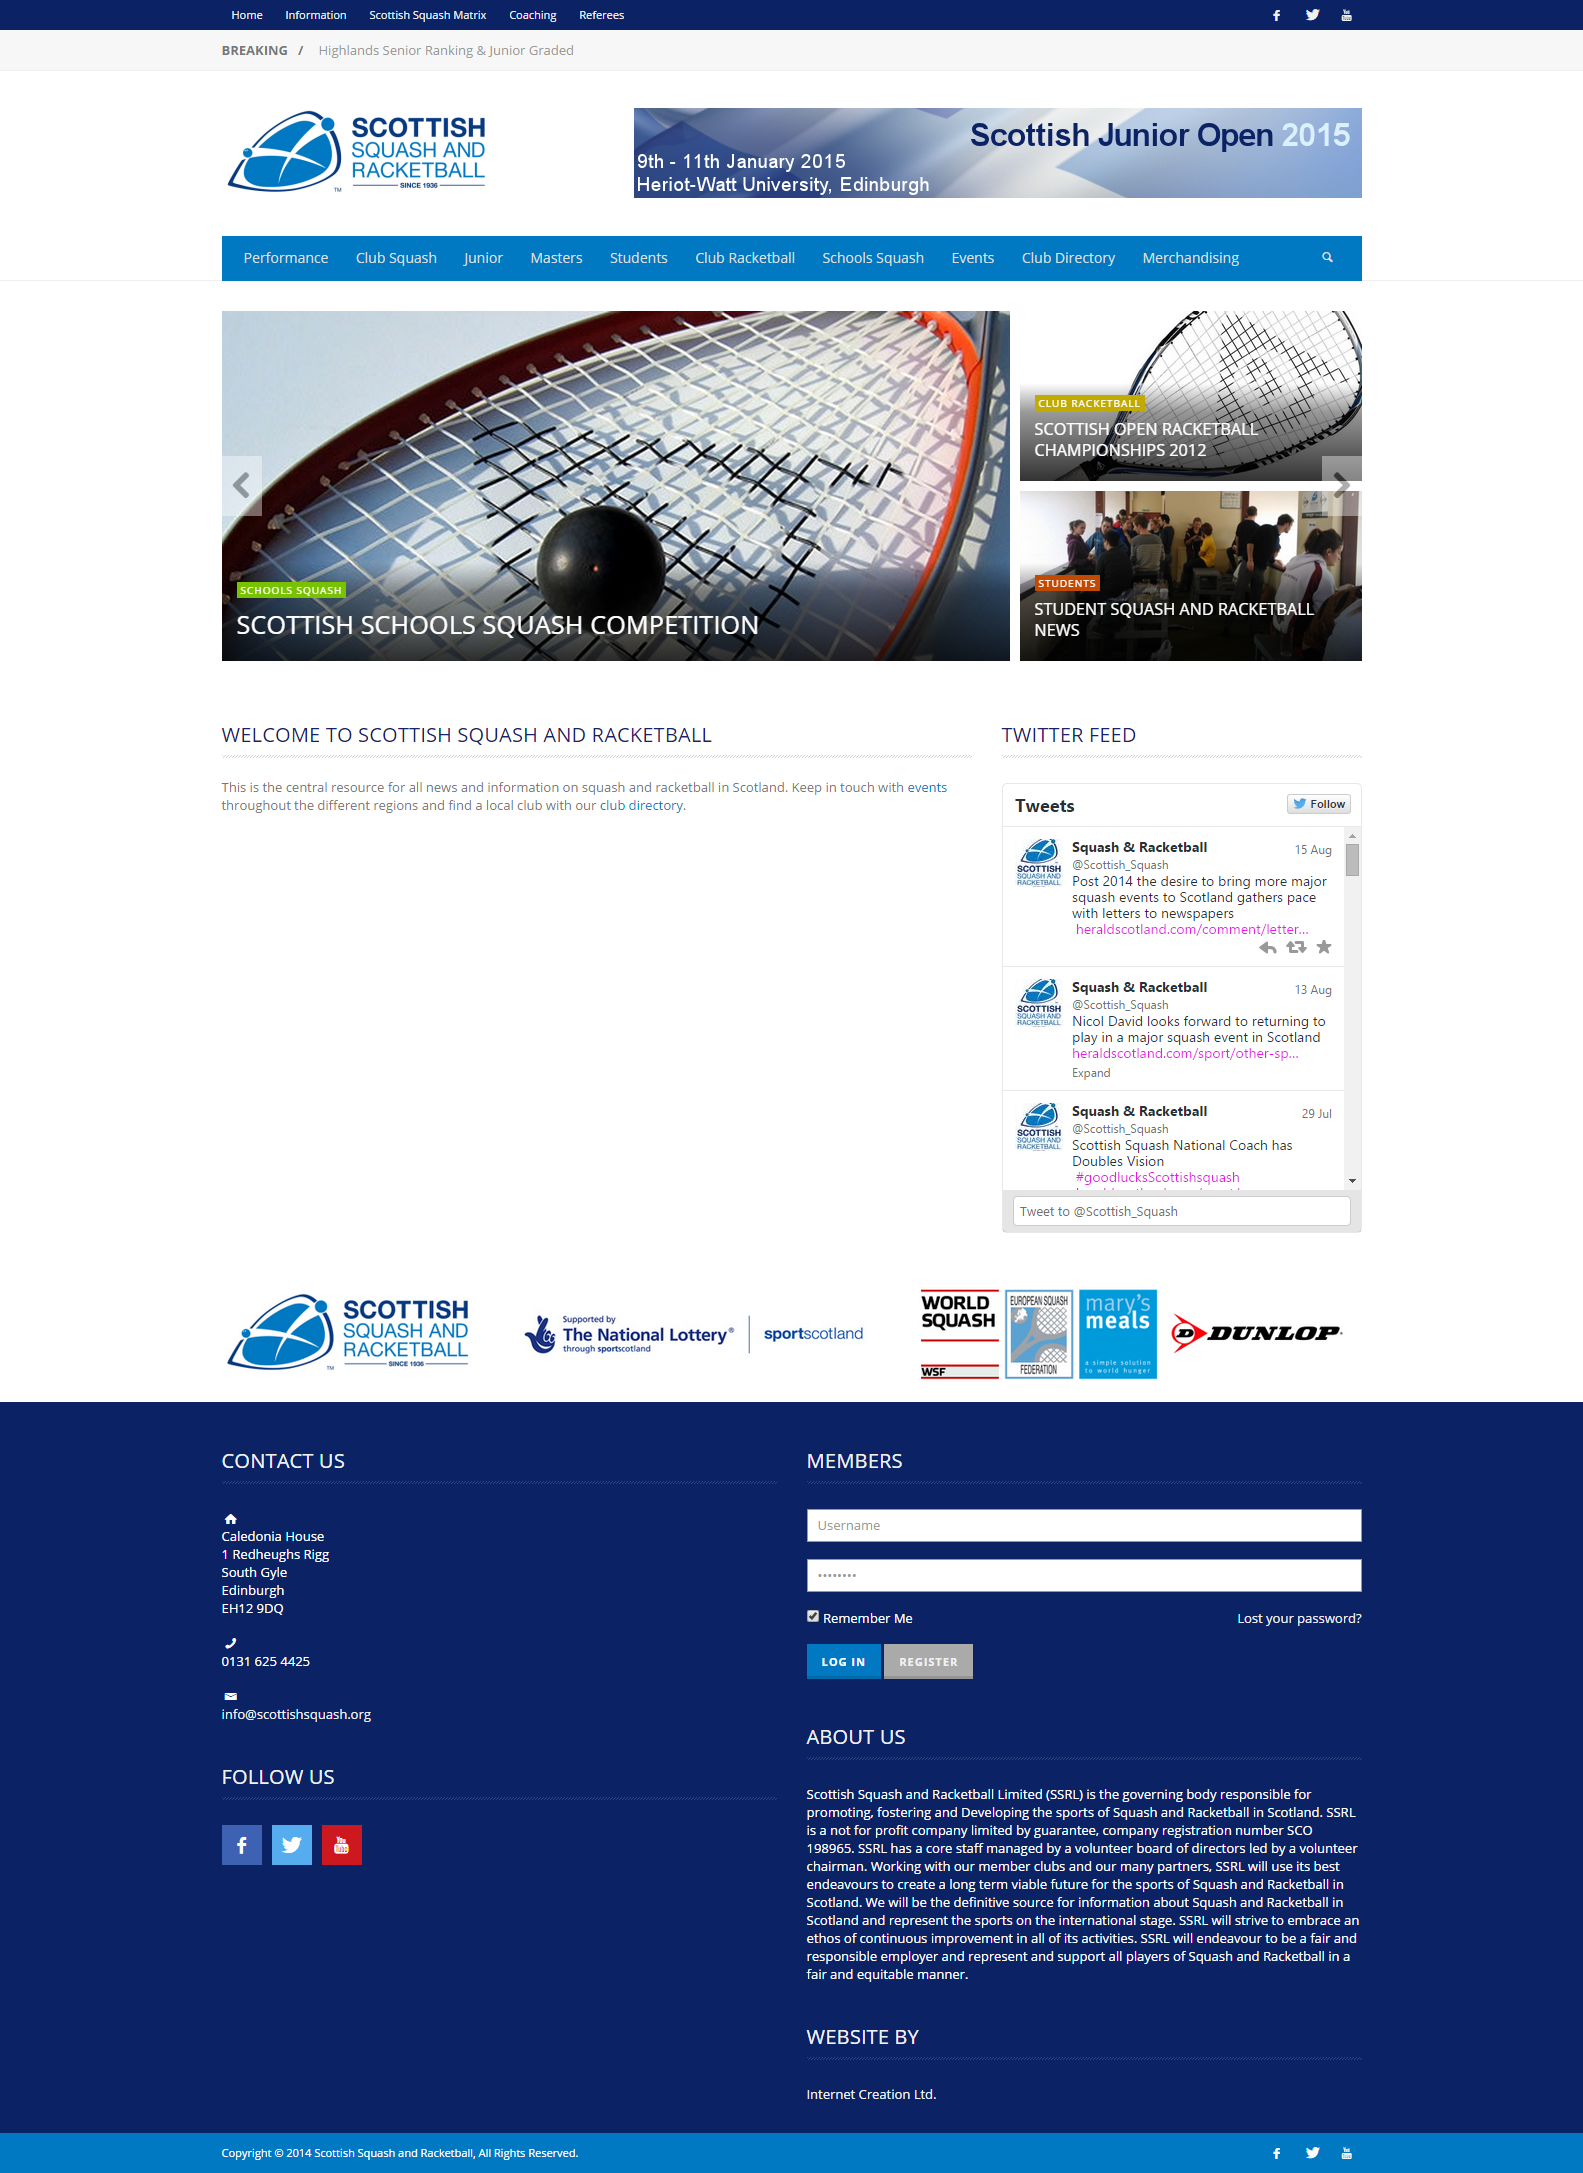 Scottish Squash And Racketball S New Website Http Www Scottishsquash Org Web Design Website Competition